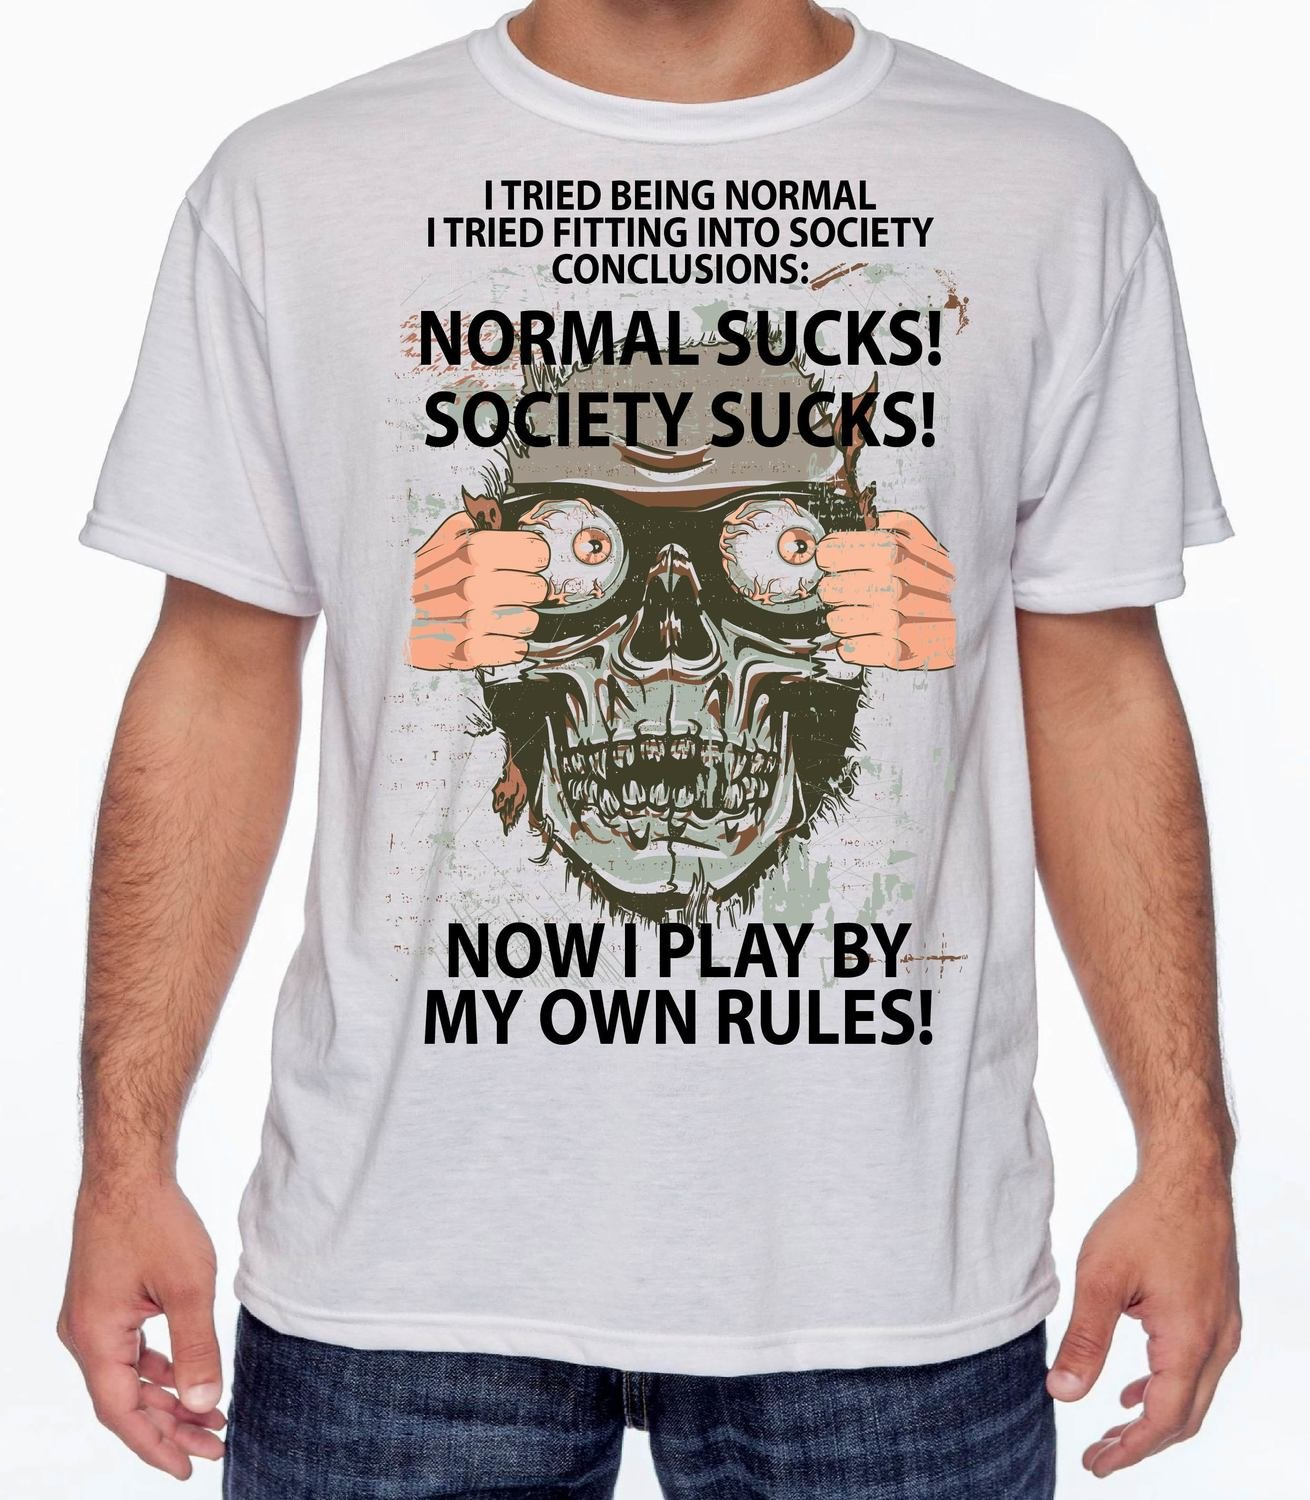 NORMAL SUCKS T-SHIRT FREE SHIPPING